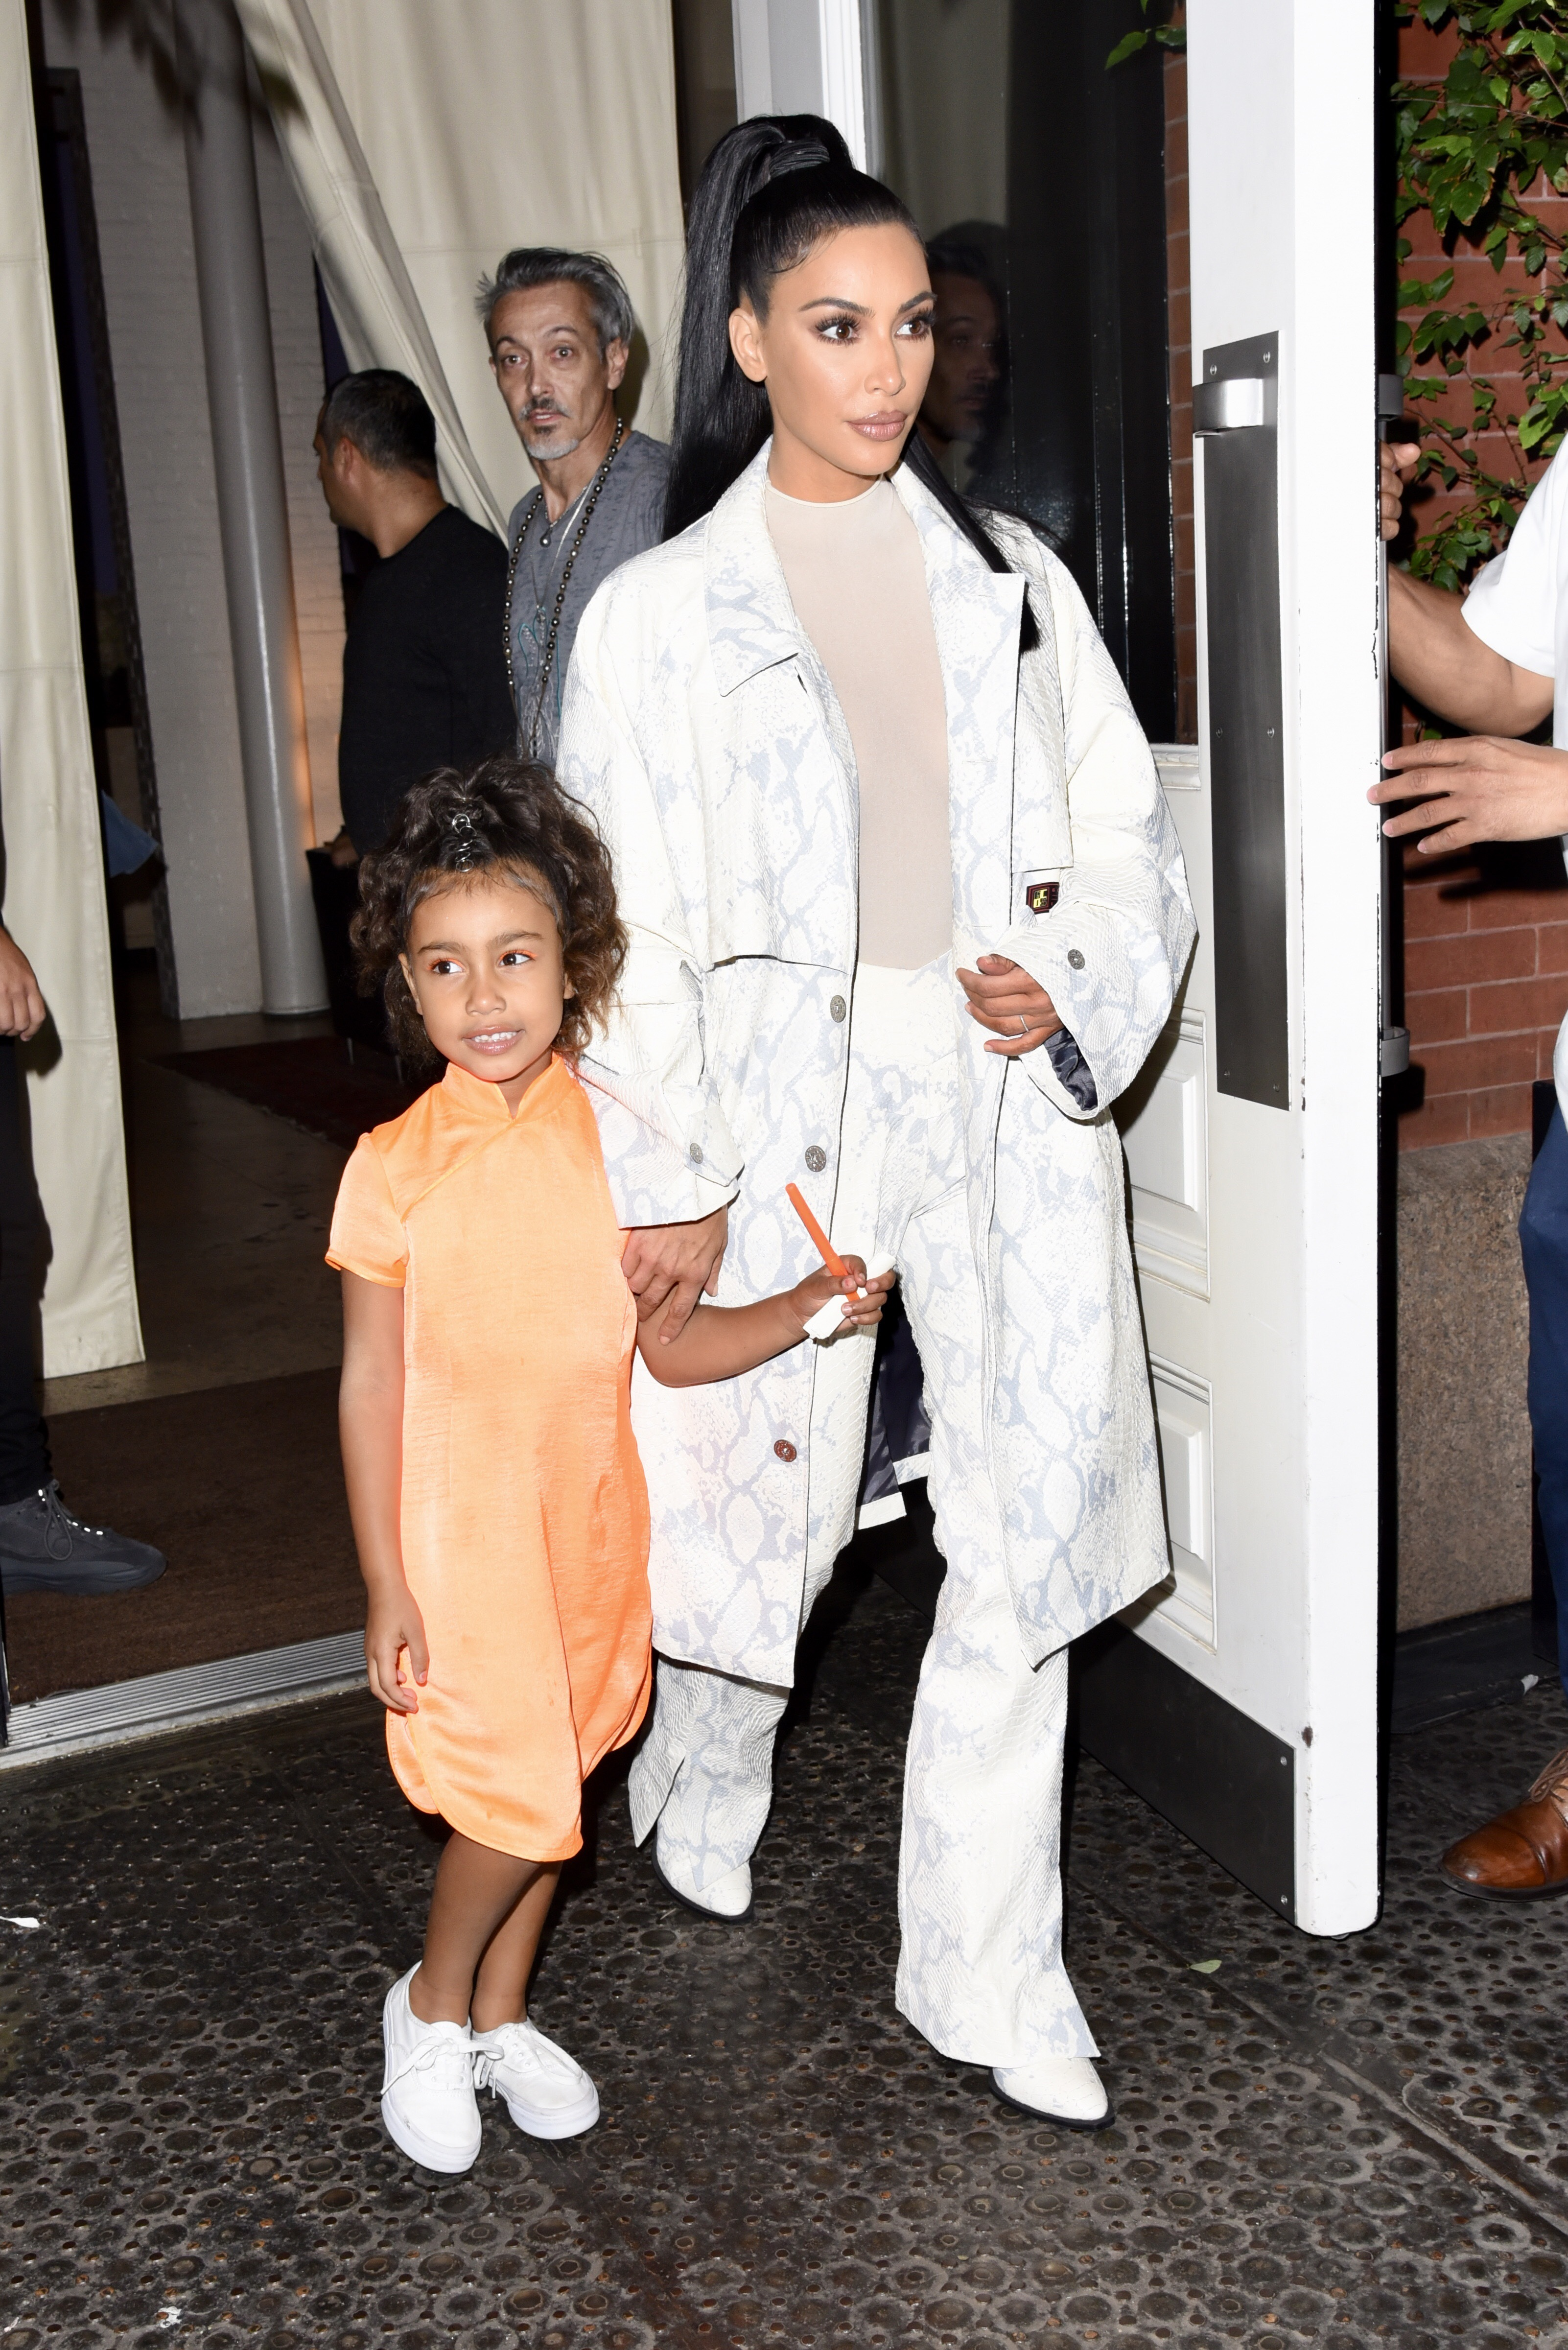 North West and Kim Kardashian West step out in New York City on Sept. 29, 2018.